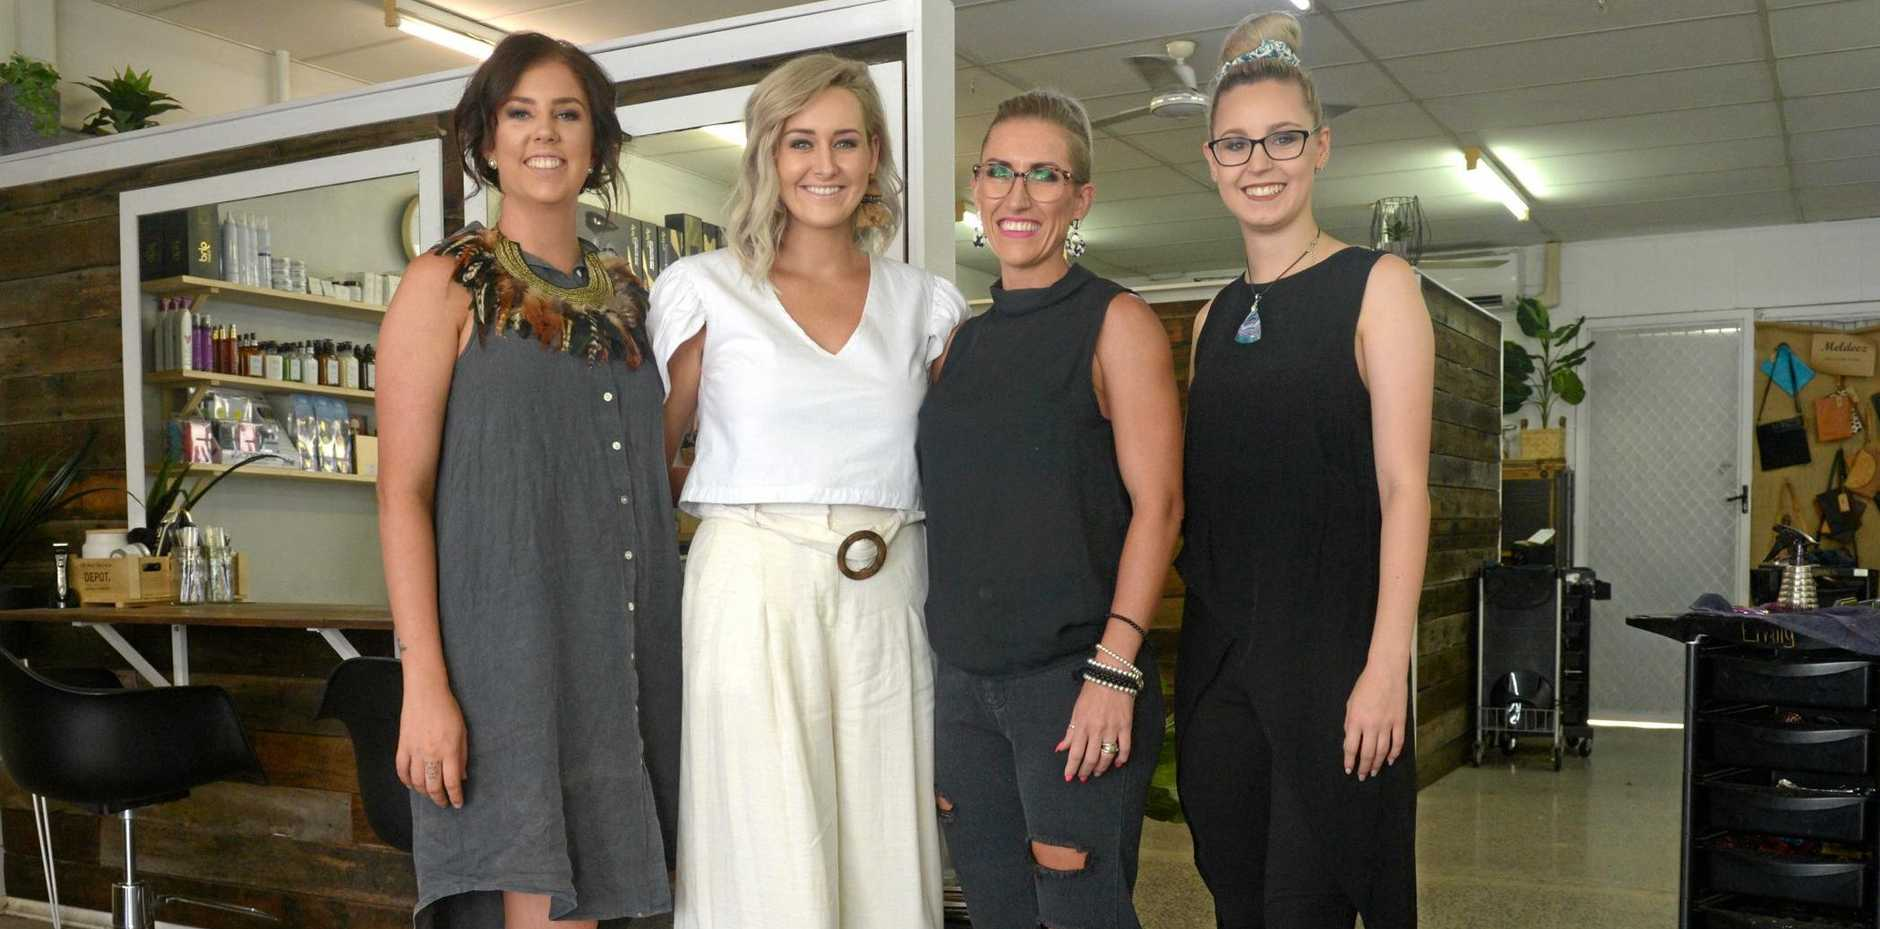 THREE CHEERS: Emily Shkardoon, Larissa McIntosh, Sarah Vea Vea and Shannon Flanagan at Floss's Hair Studio who celebrate five years in business this month.